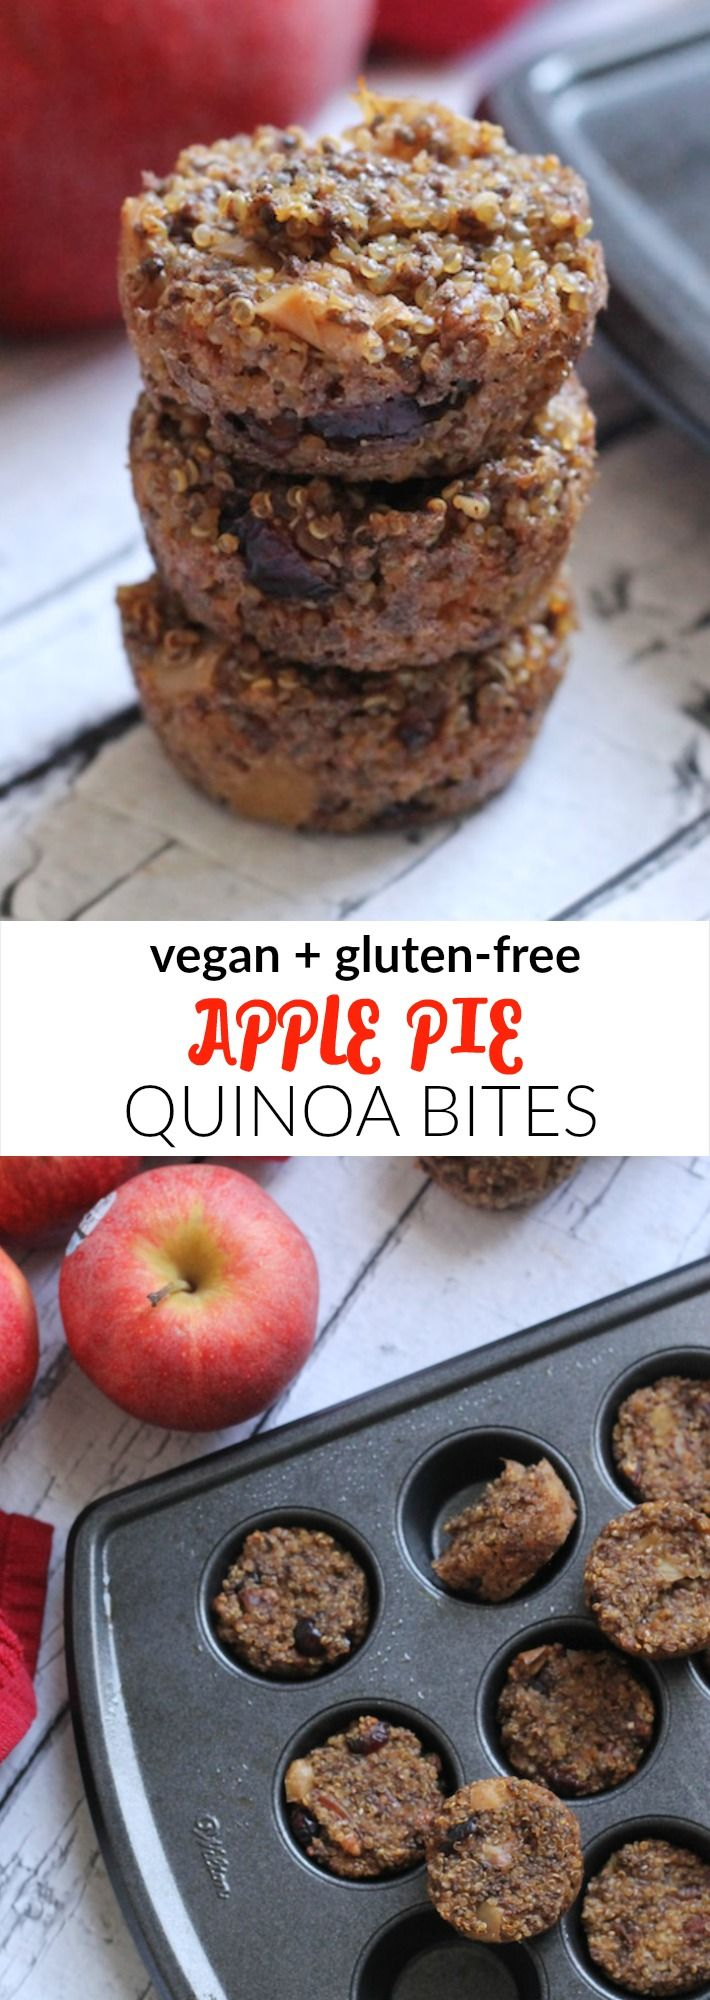 Apple Pie Quinoa Bites...wonder how I might switch up some ingredients and pin it to my zero carb board!